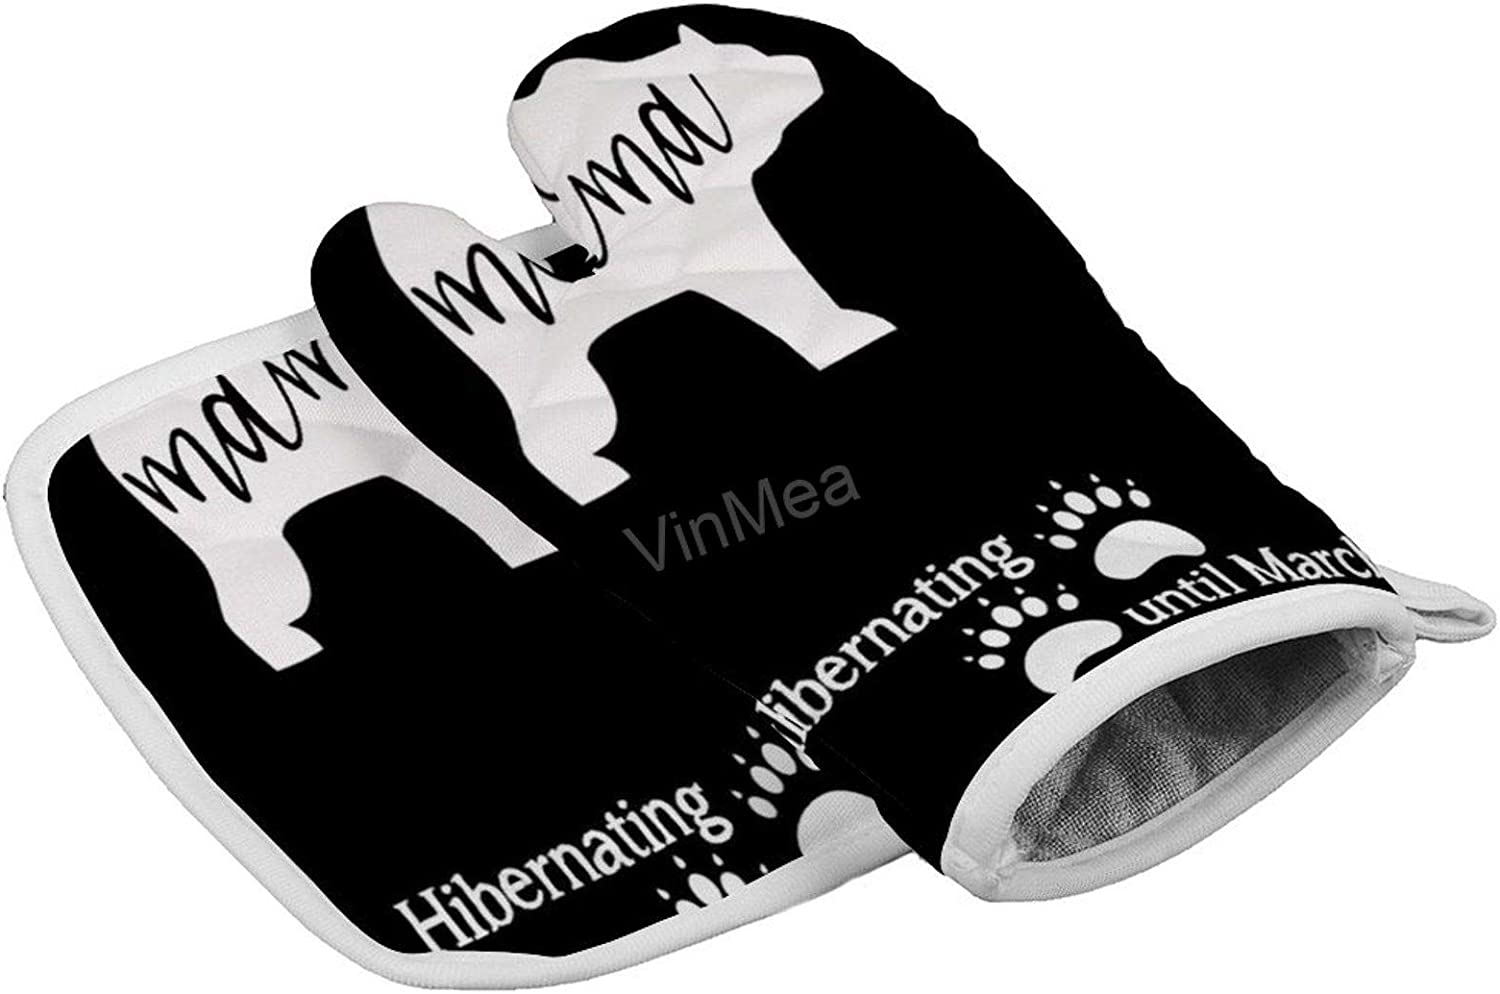 VinMea Oven Mitt and Pot Holder Set Pregnancy Announcemen Mama Bear Due Date in March Heat Resistant Oven Mitts Non Slip Pot Holders, Kitchen Microwave Gloves for Baking Cooking Grilling BBQ